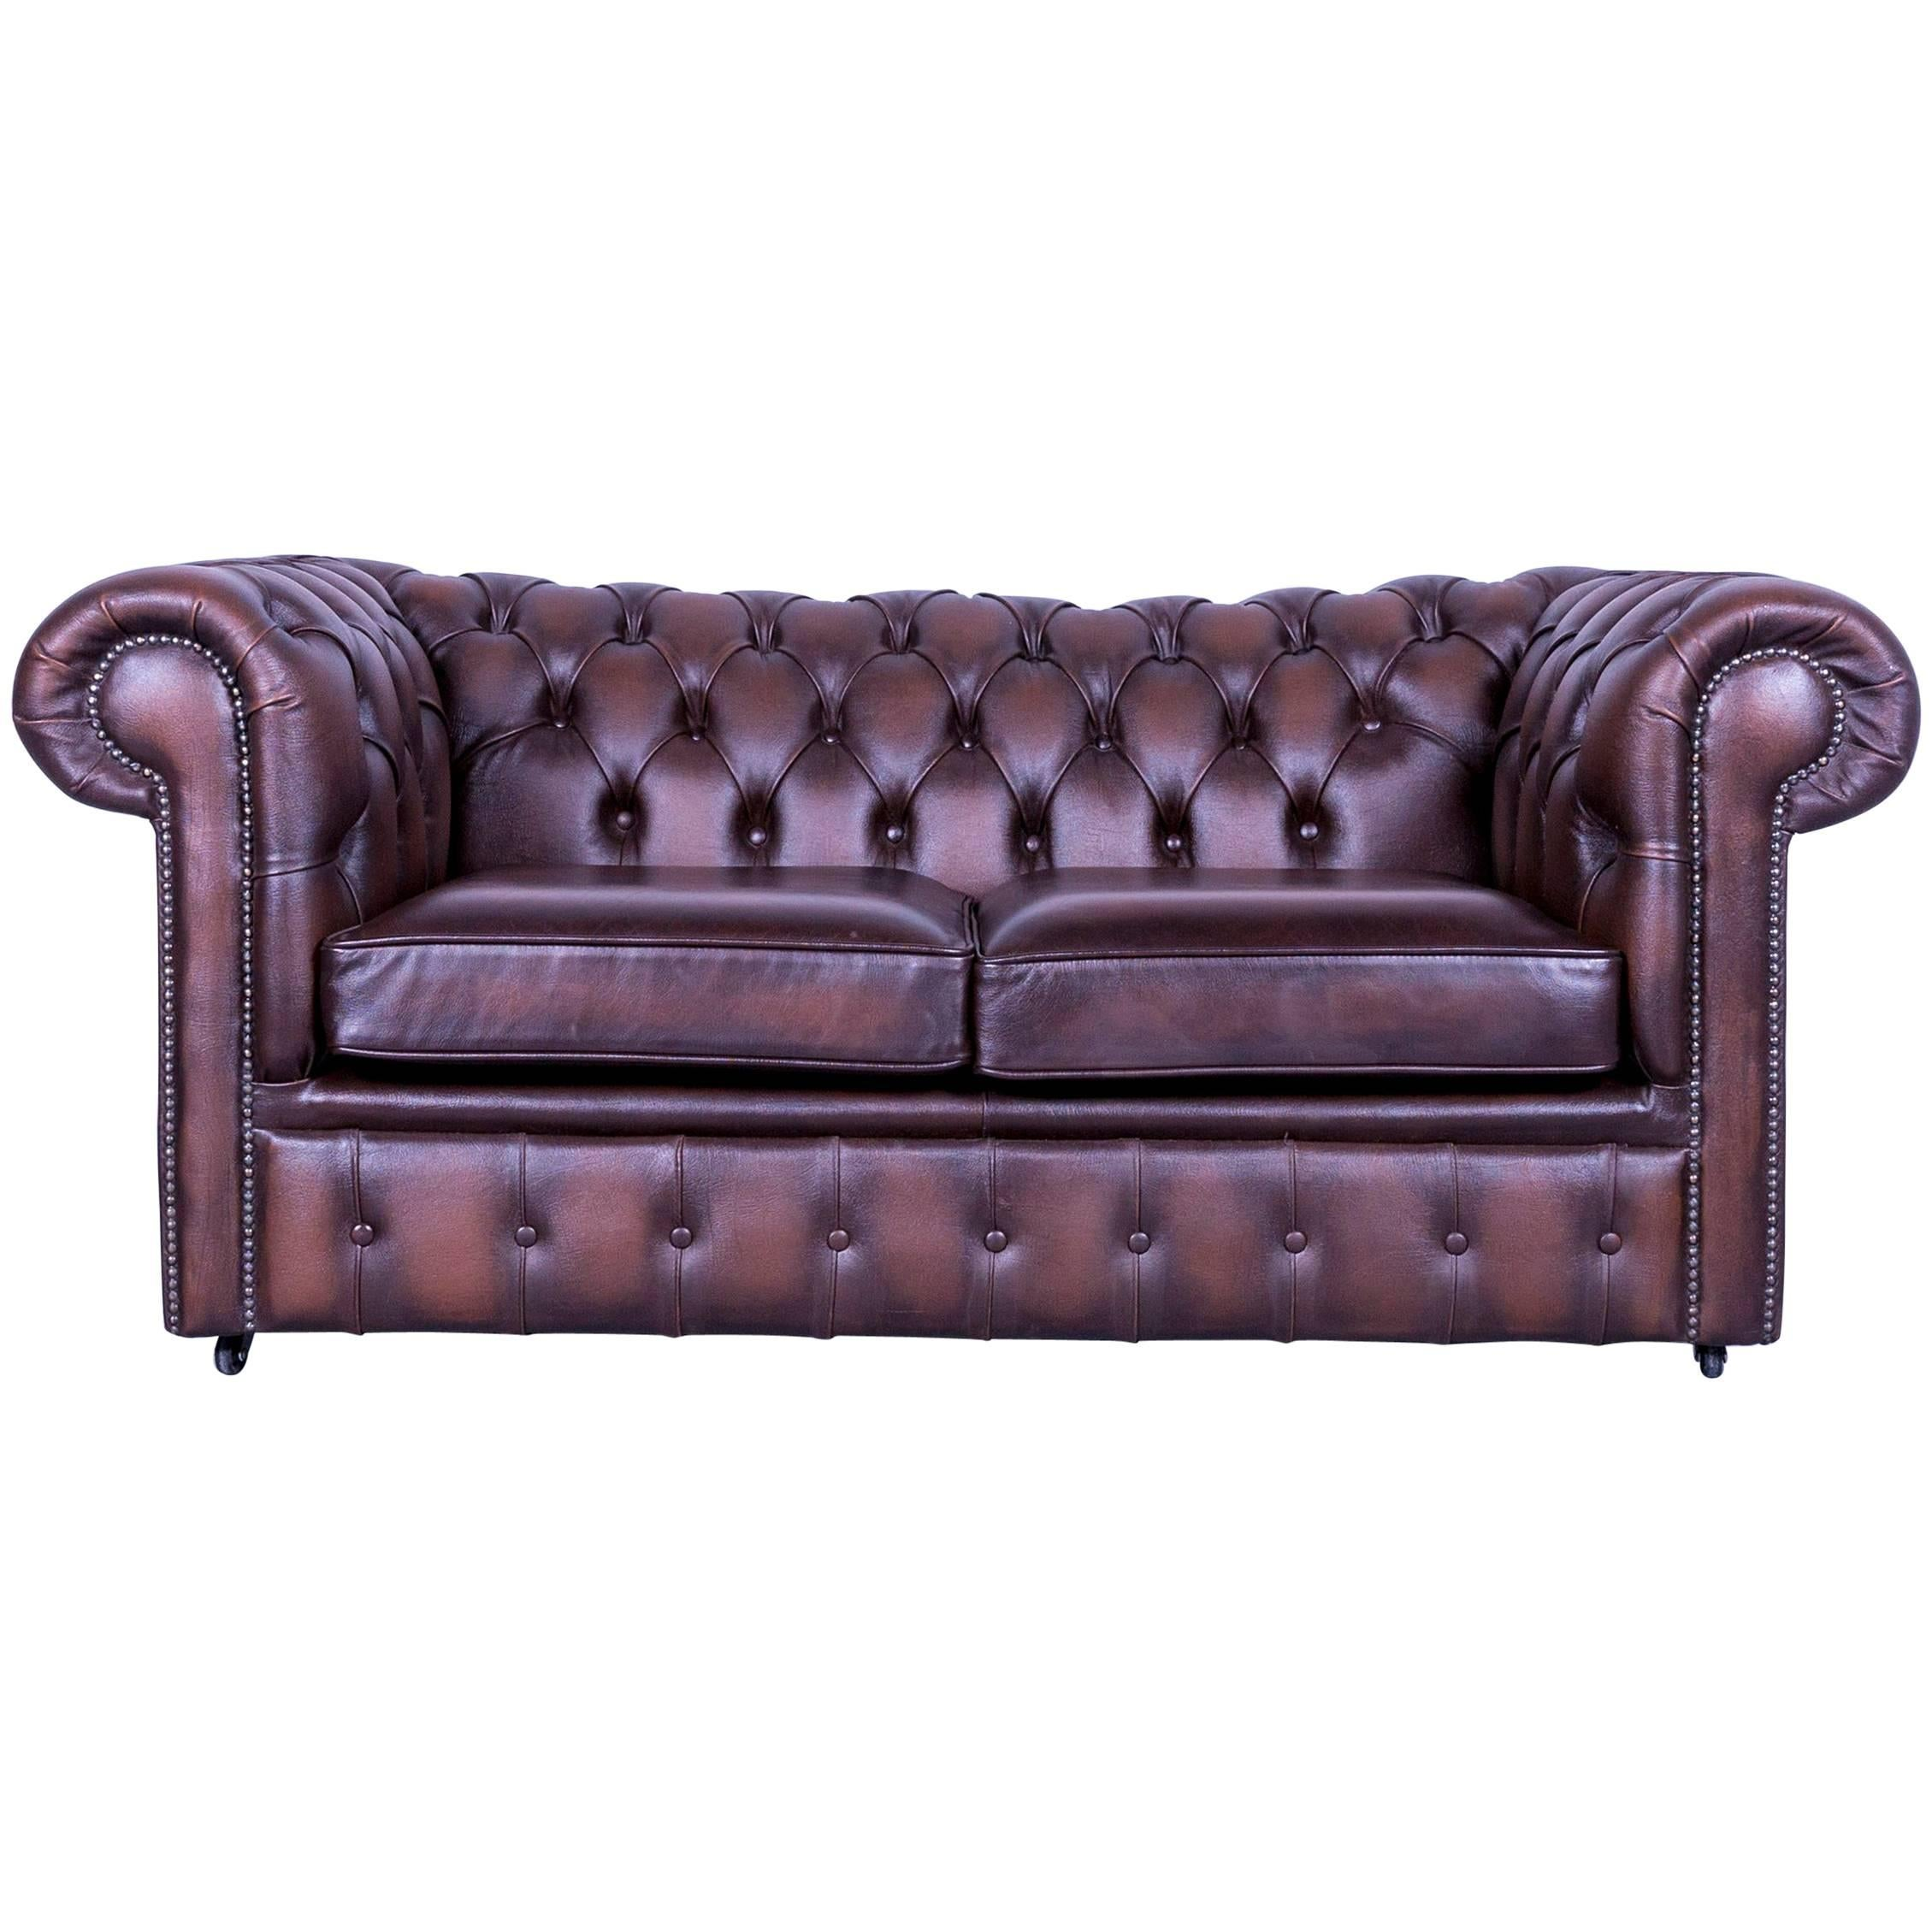 Chesterfield Two Seat Sofa Brown Leather Couch Vintage Retro Rivets For Sale